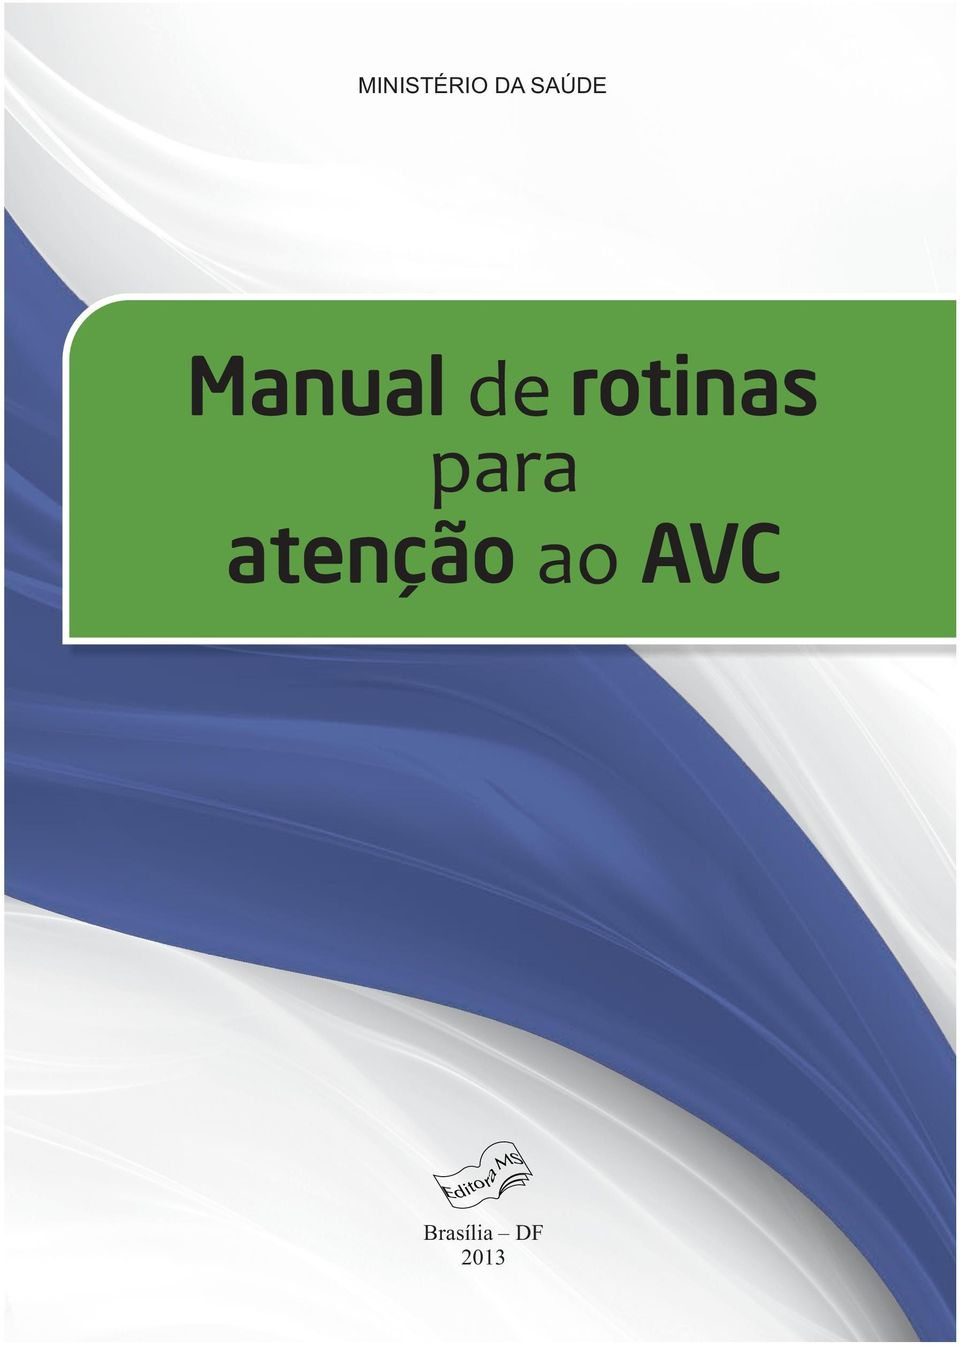 419988 Manual de rotinas